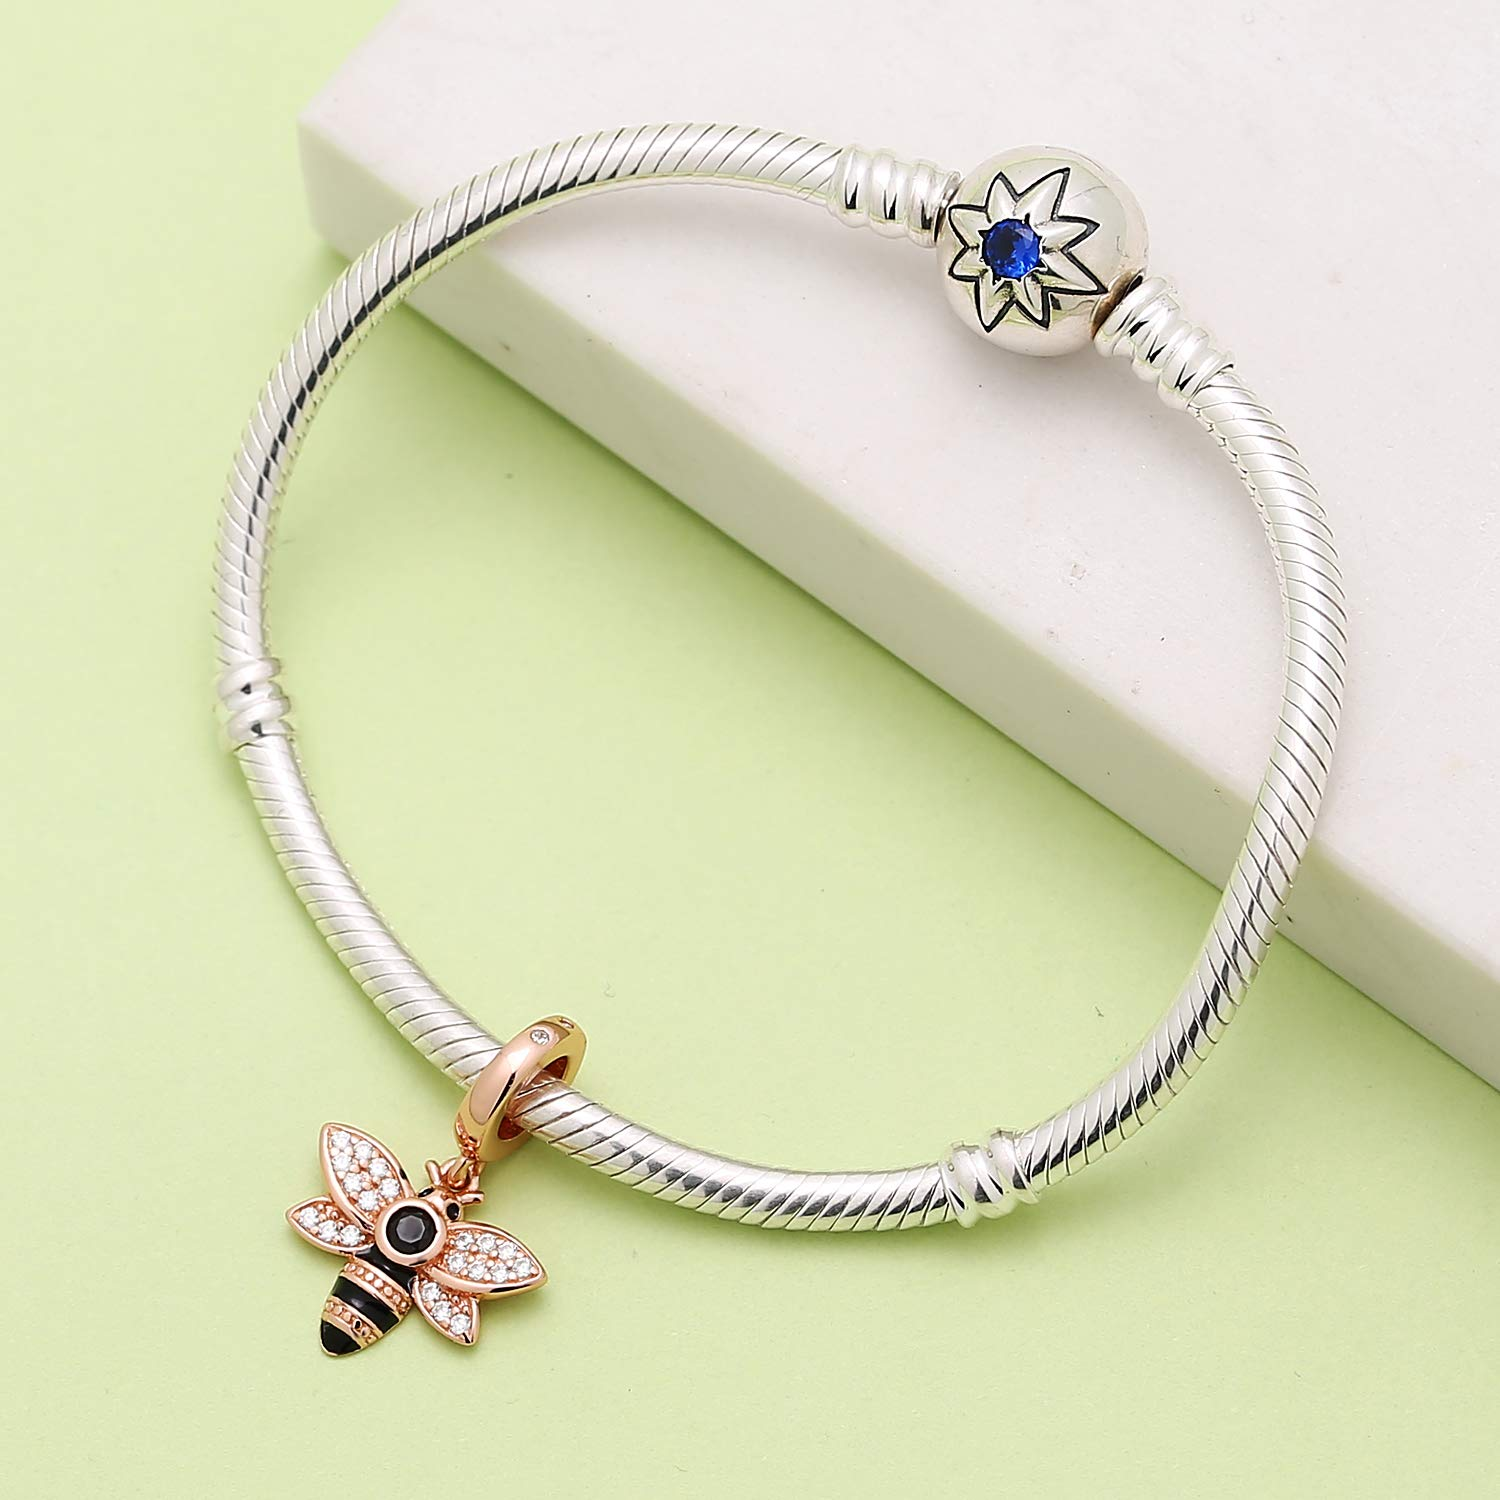 Jewelry & Accessories Authentic 925 Sterling Silver Animal Pendant Bead Monkey Hanging Charm Fit Original Pandora Bracelet Bangle Women Diy Jewelry Quality First Beads & Jewelry Making